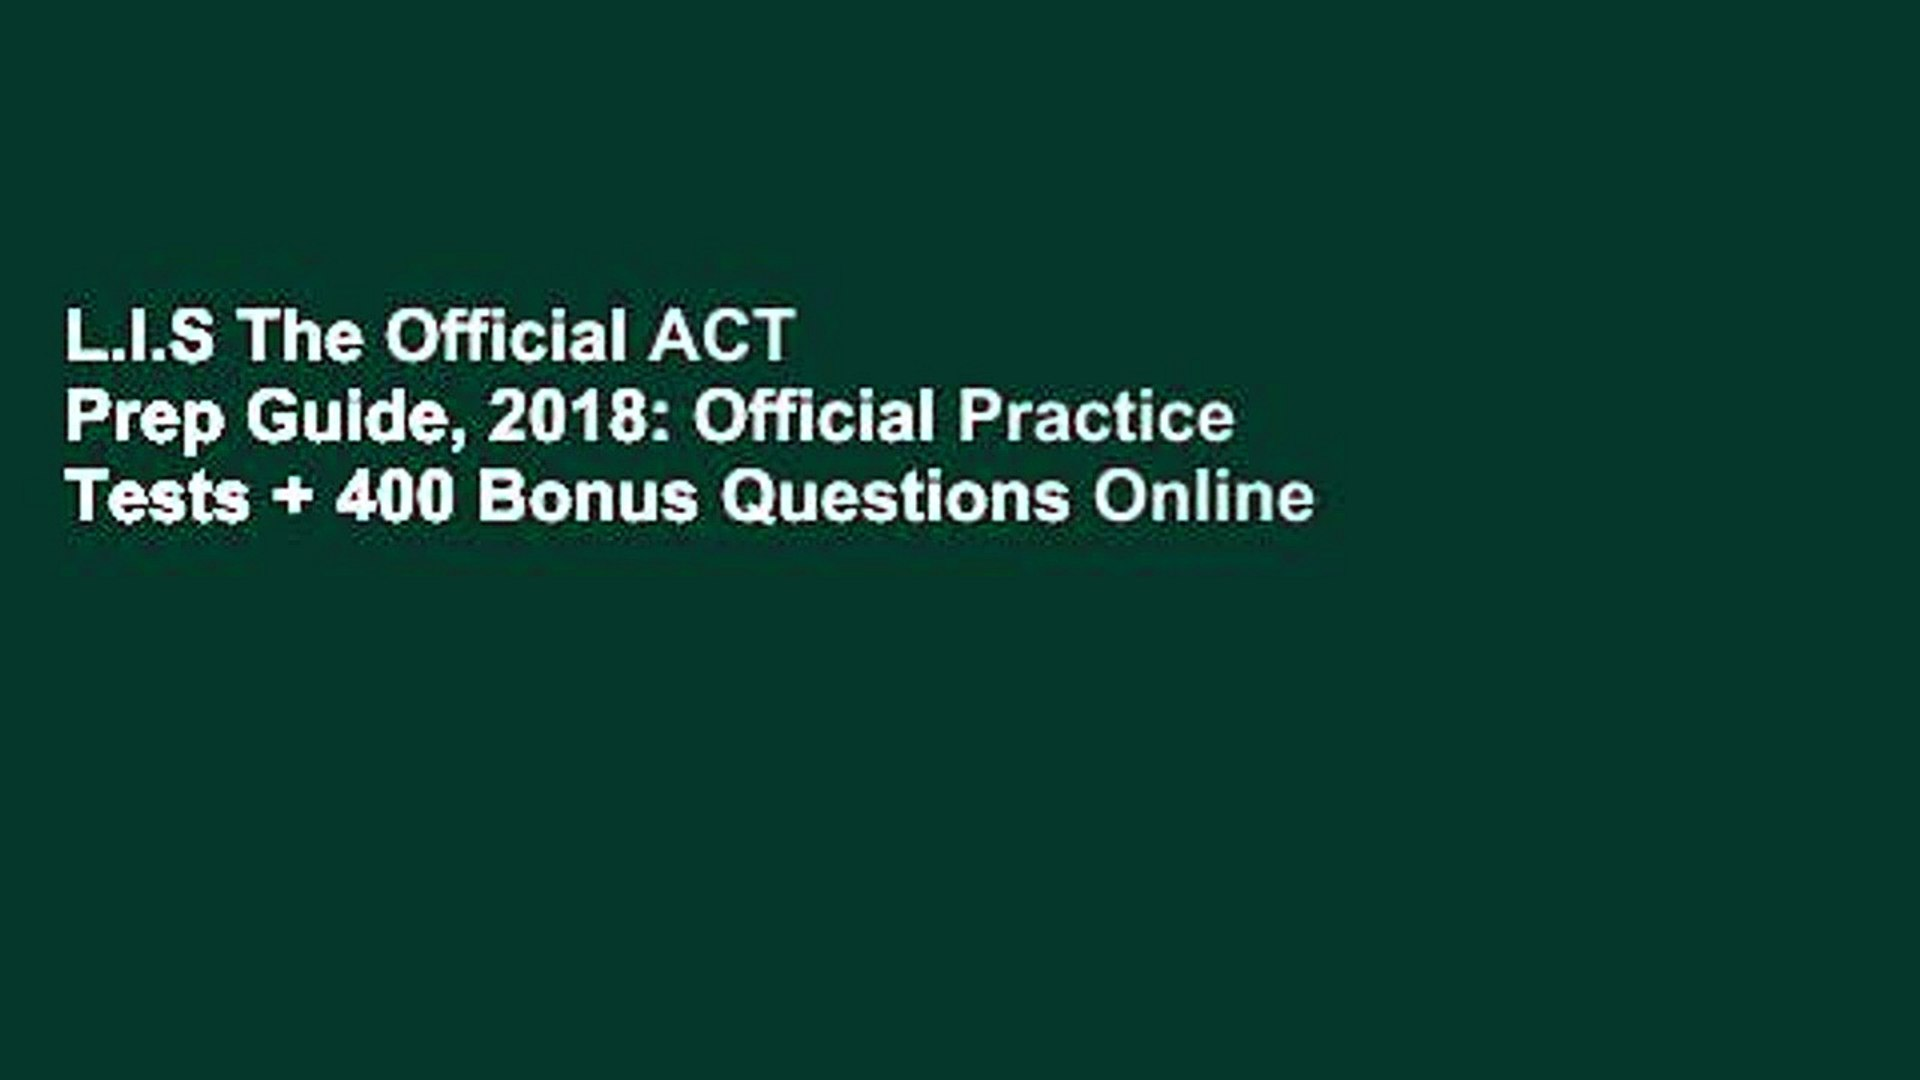 L I S The Official ACT Prep Guide, 2018: Official Practice Tests + 400  Bonus Questions Online